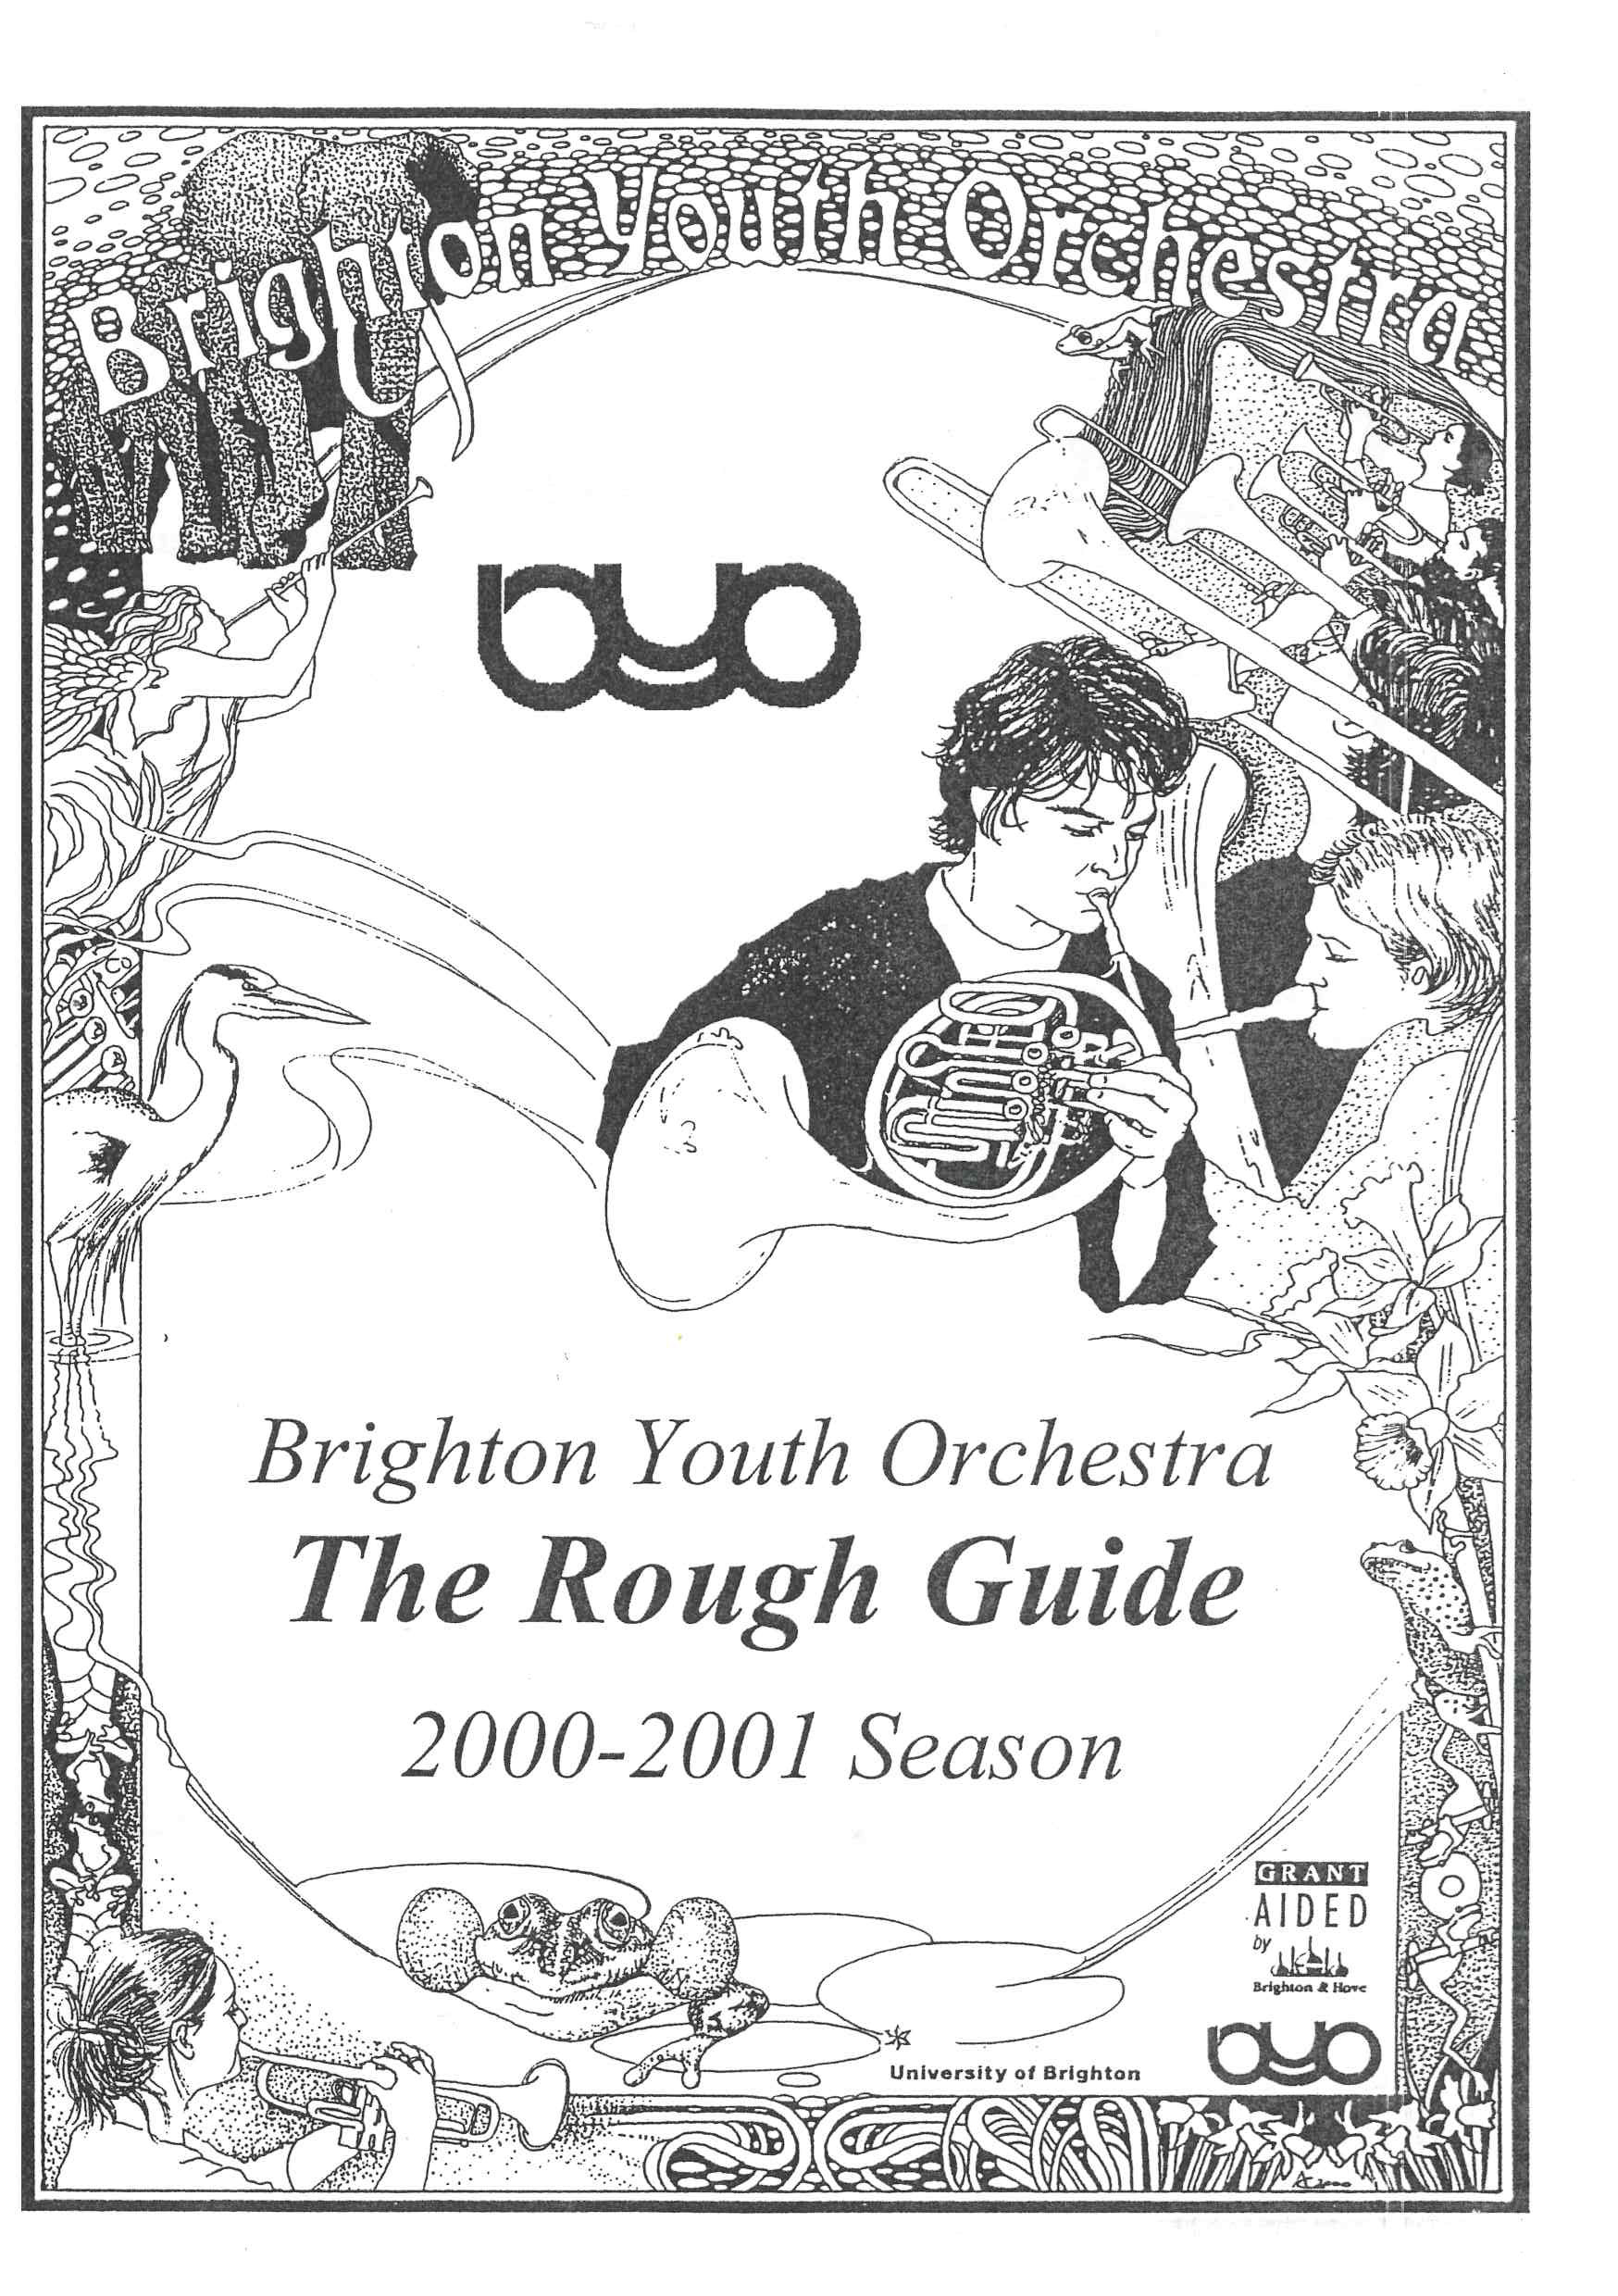 00347-Rough Guide, Season 2000-2001.jpg